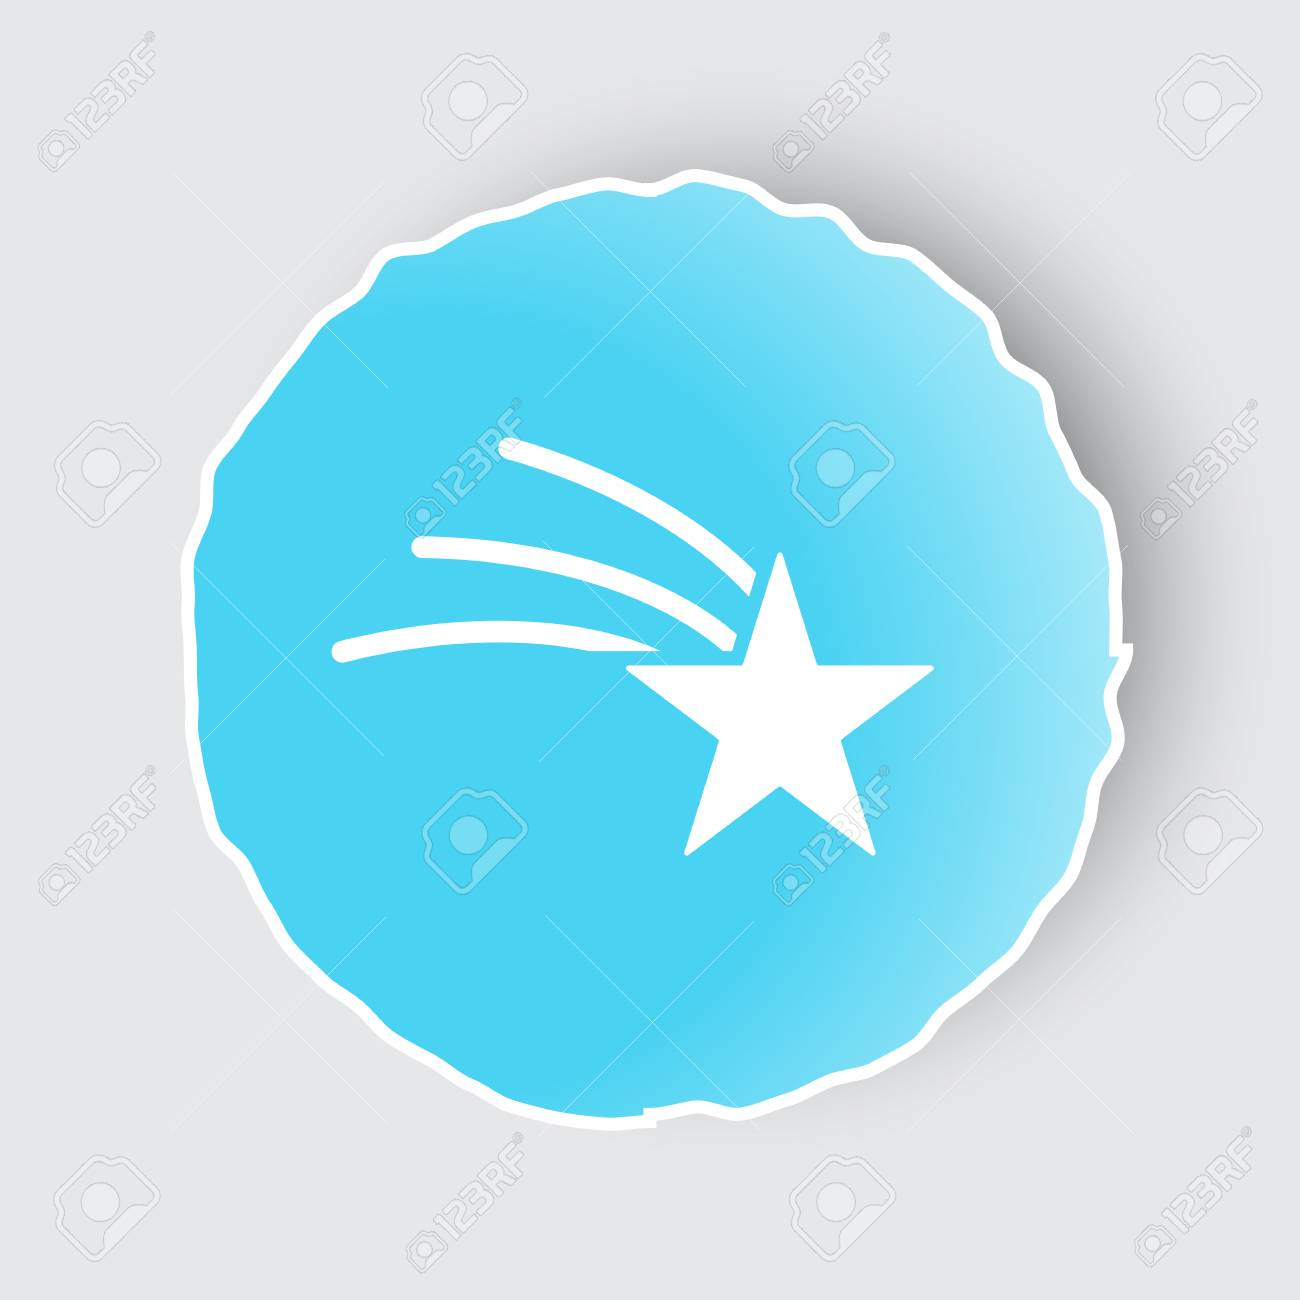 blue app button with shooting star icon on white royalty free